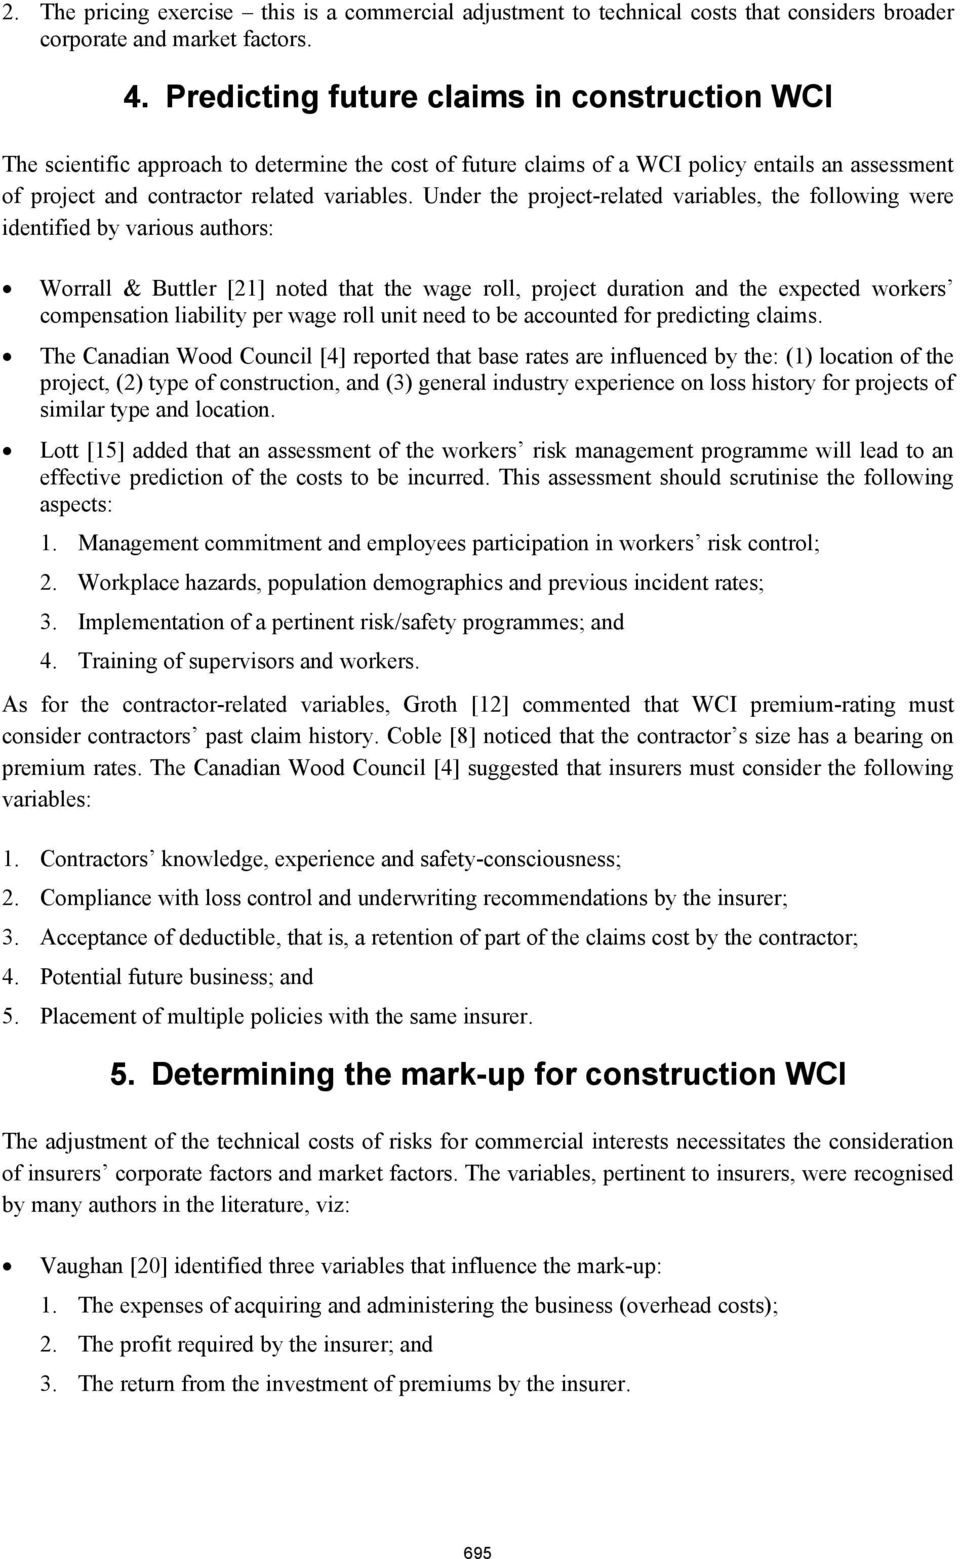 Under the project-related variables, the following were identified by various authors: Worrall & Buttler [21] noted that the wage roll, project duration and the expected workers compensation